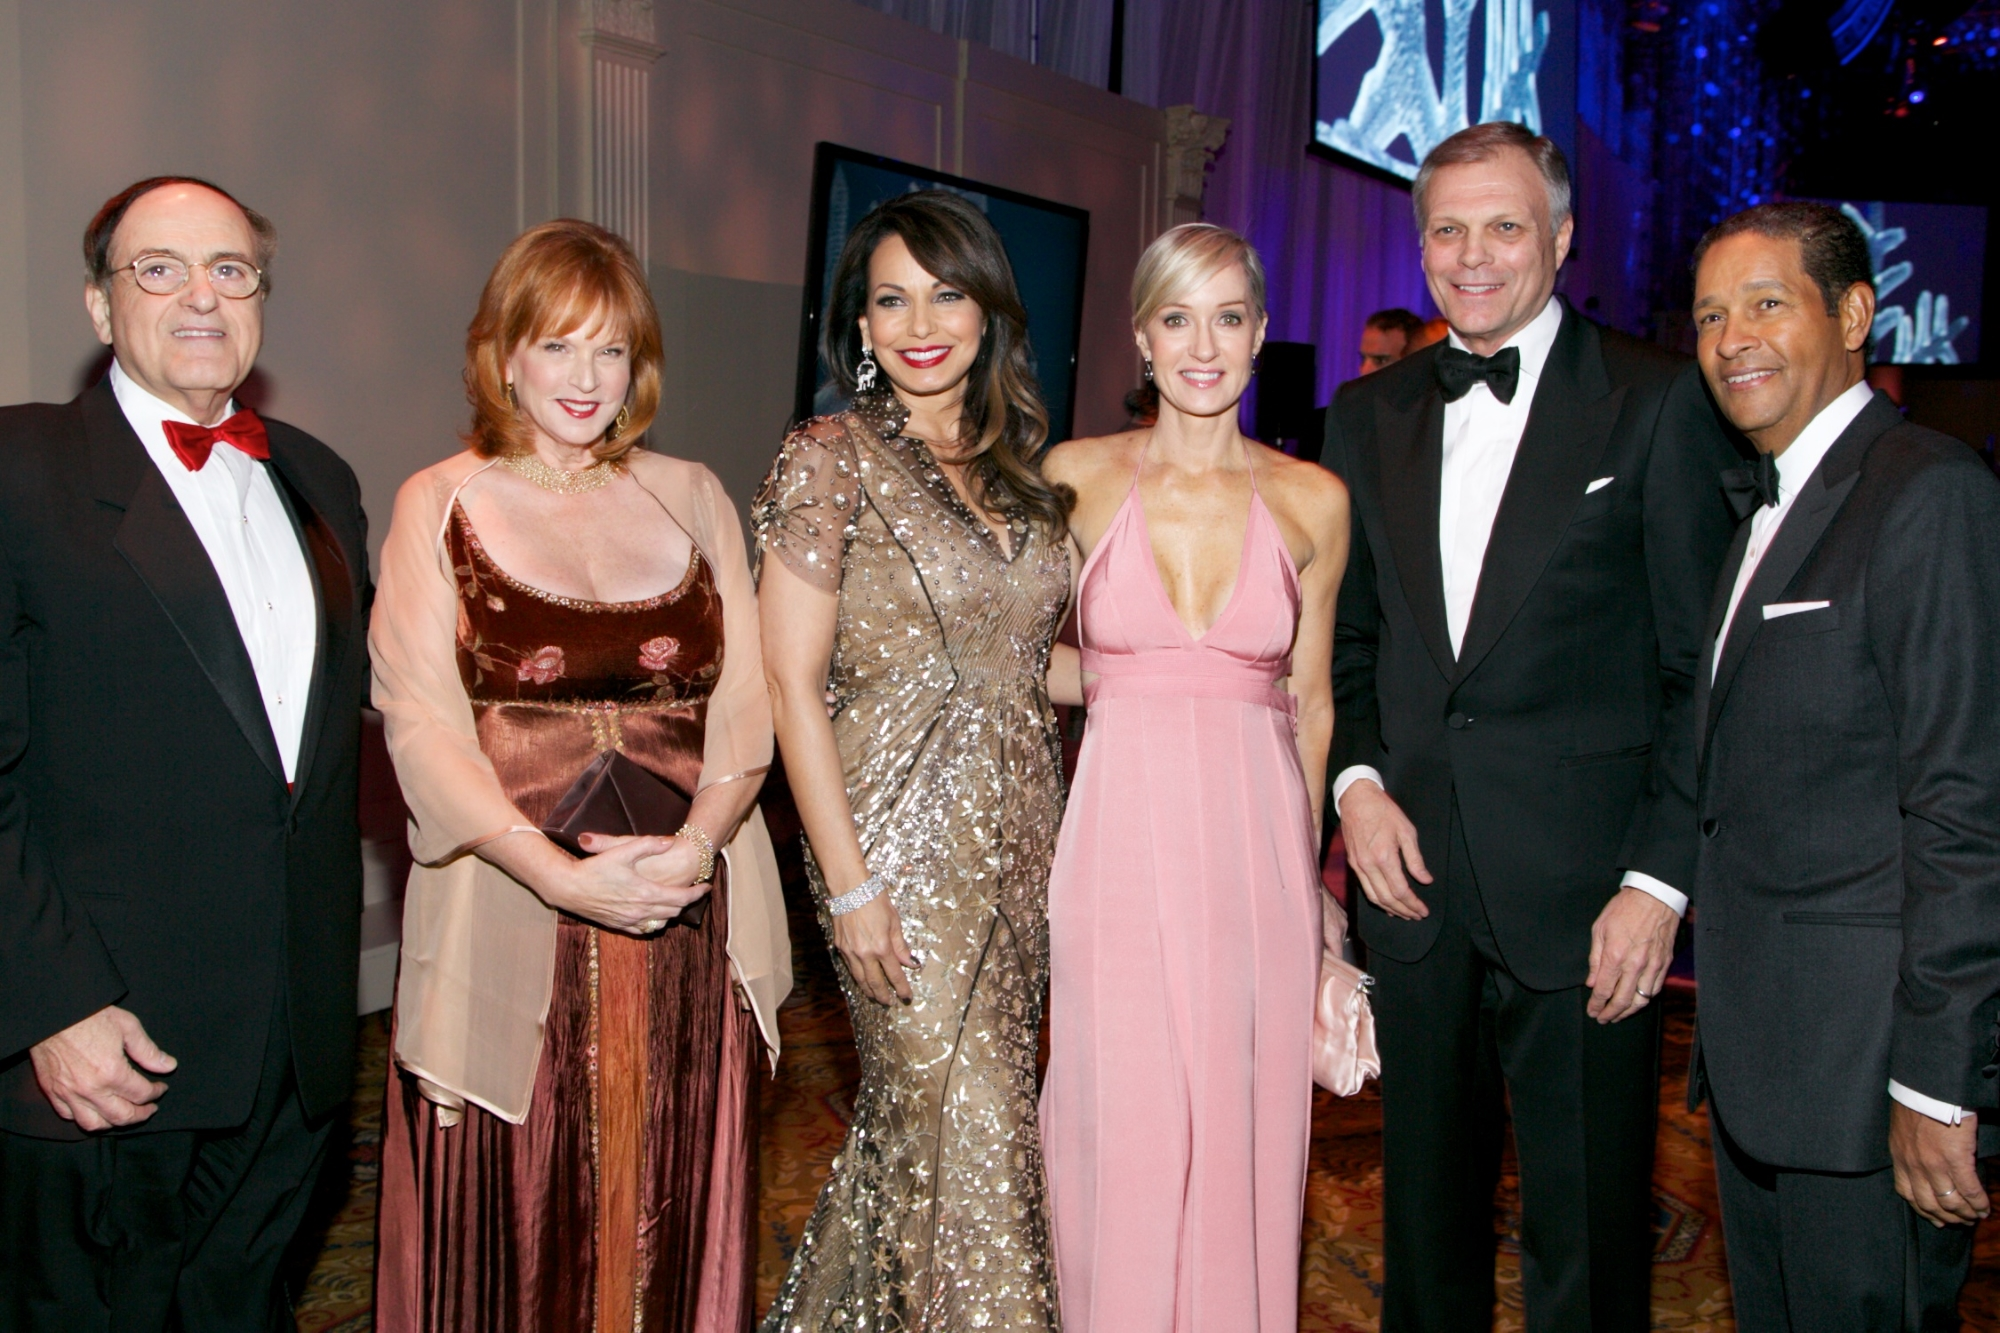 George and Christine Stonbely, Moll Anderson, Hilary Gumbel, Charlie Anderson and Bryant Gumbel© 2013 Julie Skarratt Photography Inc./U.S. Fund for UNICEF